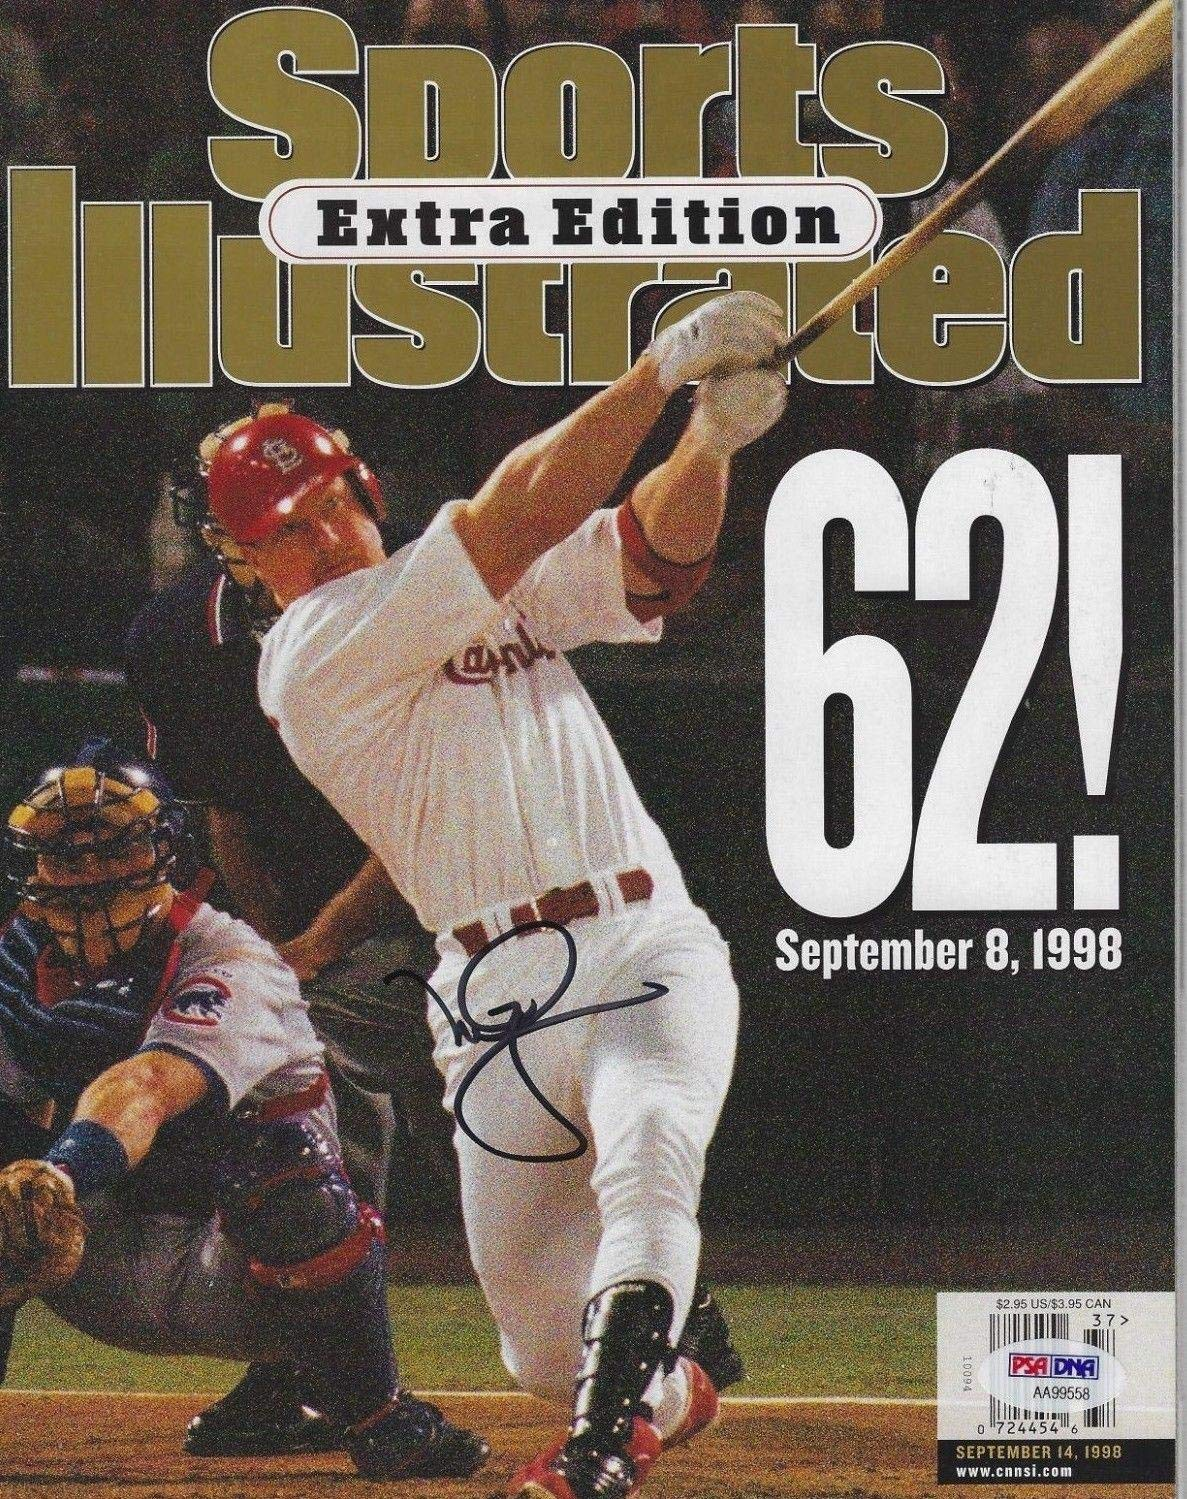 MARK McGWIRE Signed SPORTS ILLUSTRATED EXTRA EDITION with COA (NO Label) PSA/DNA Certified Autographed MLB Magazines